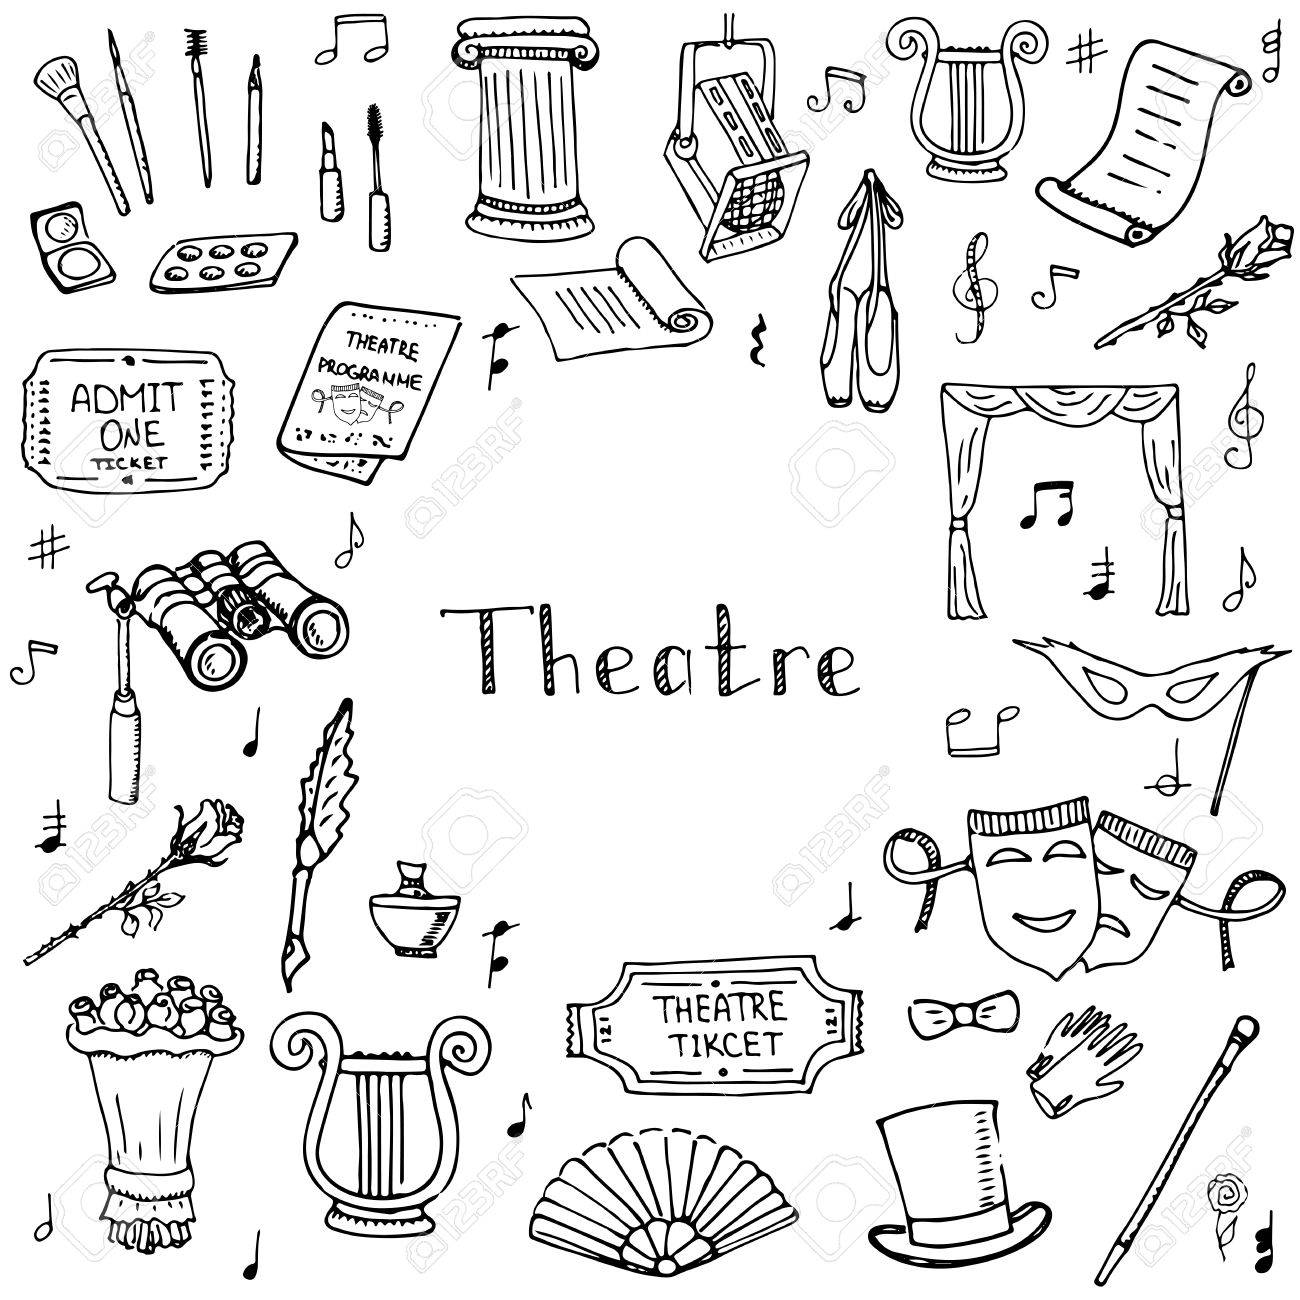 hand drawn doodle theatre set vector illustration sketchy theater hand drawn doodle theatre set vector illustration sketchy theater icons theatre acting performance elements ticket masks